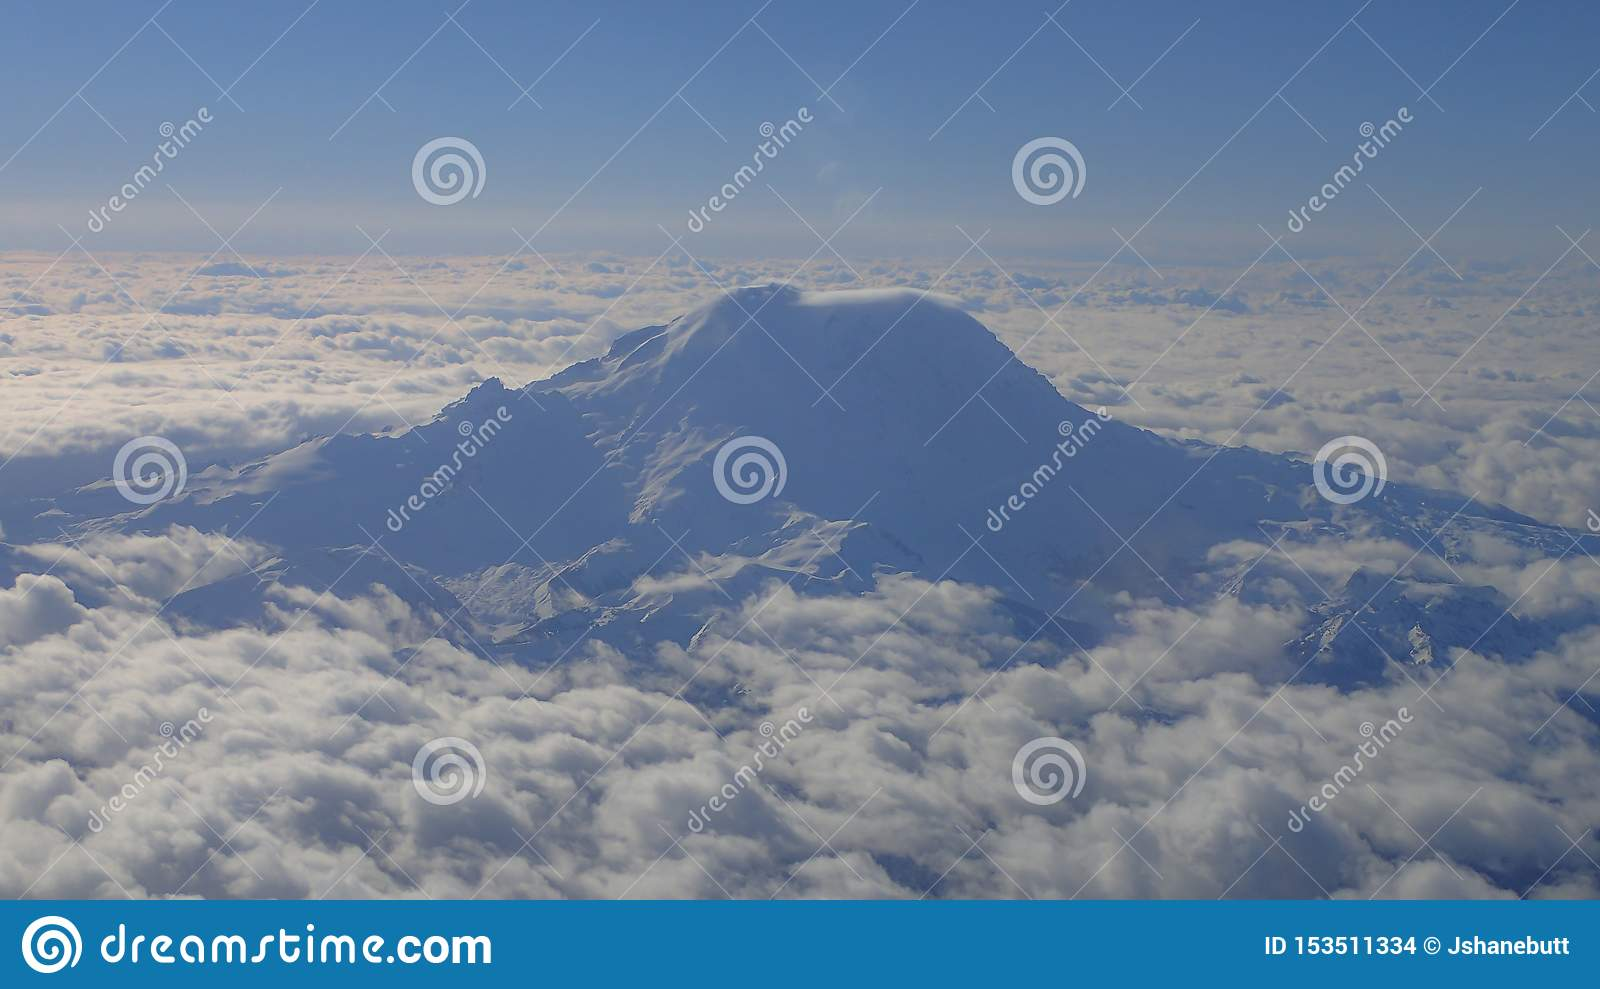 Aerial view of snow covered Mt. Rainier